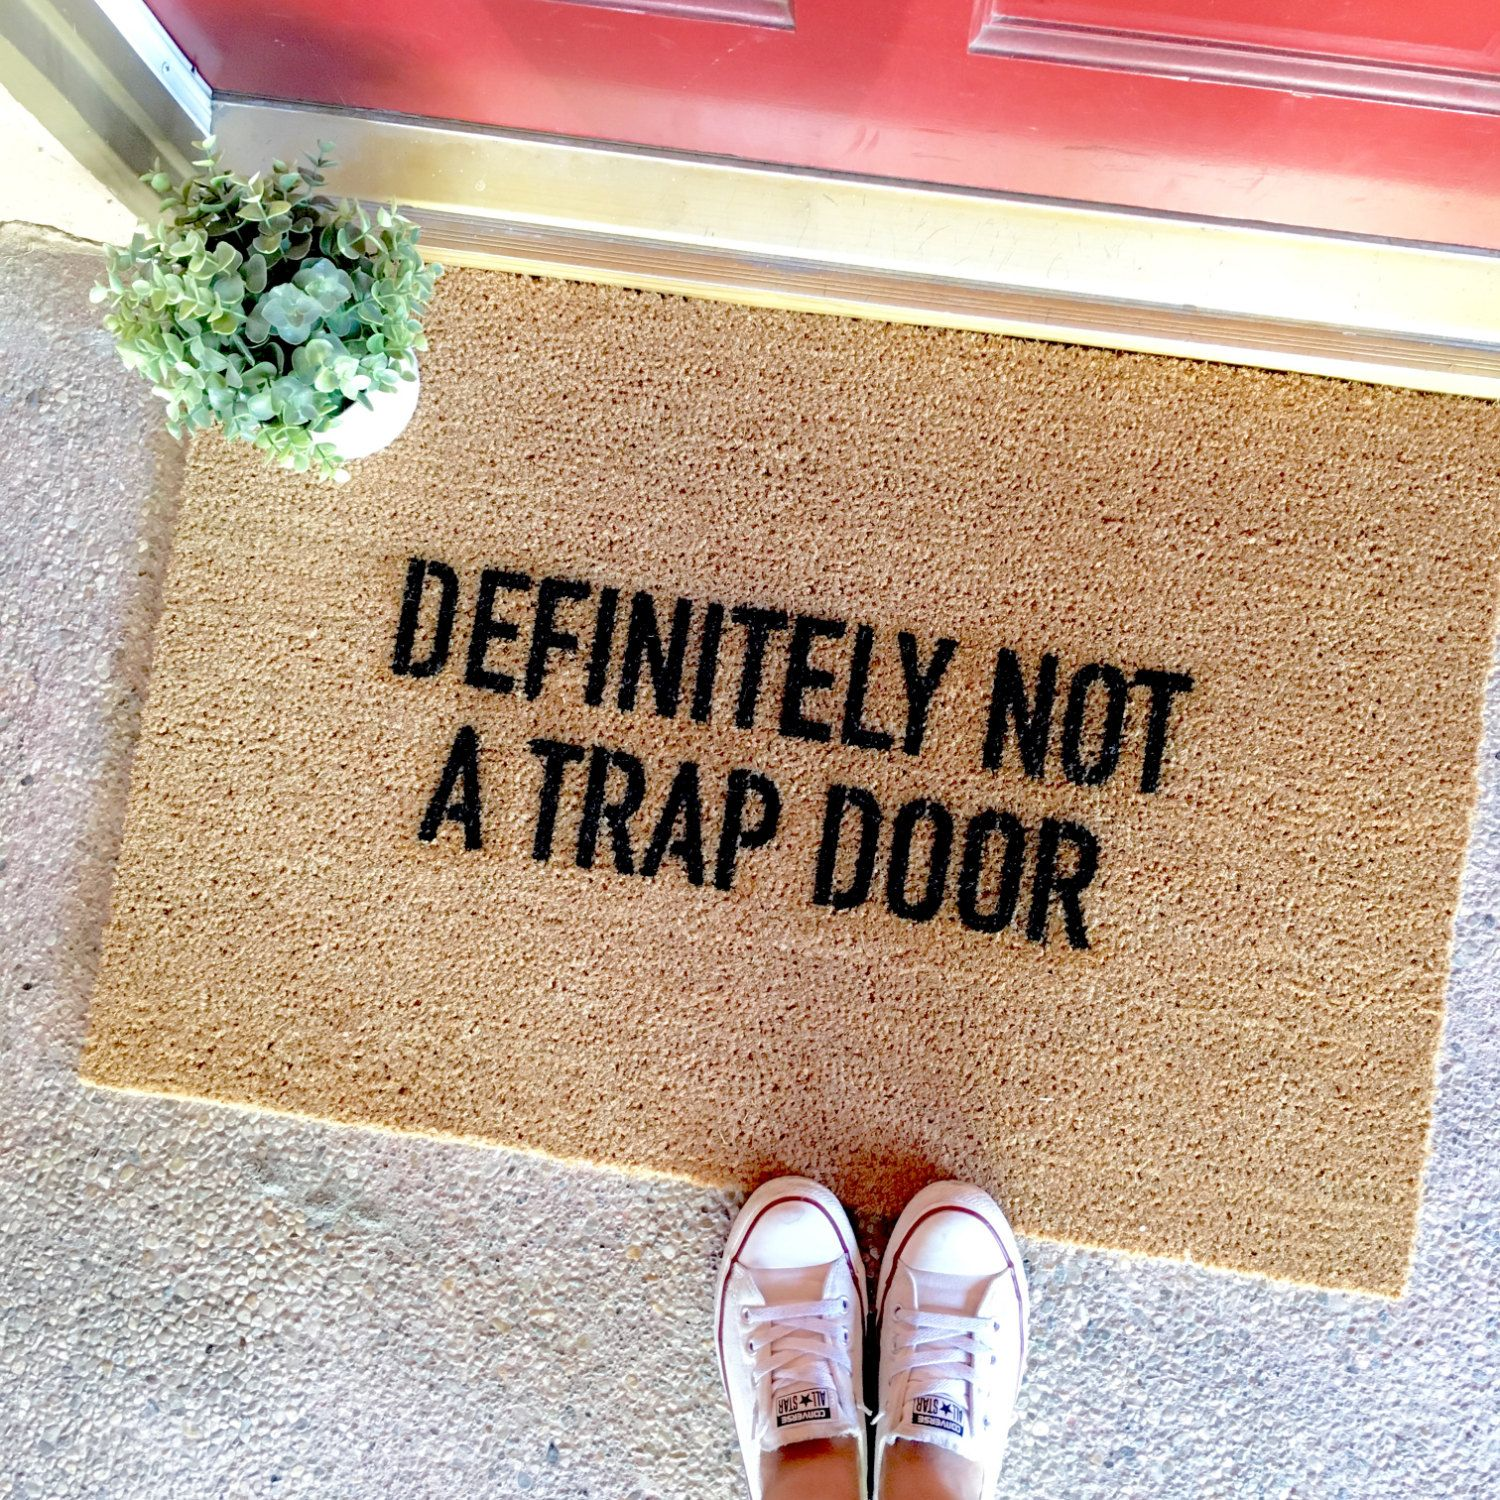 The This Is Not A Trap Door Doormat Funny Doormats Cute